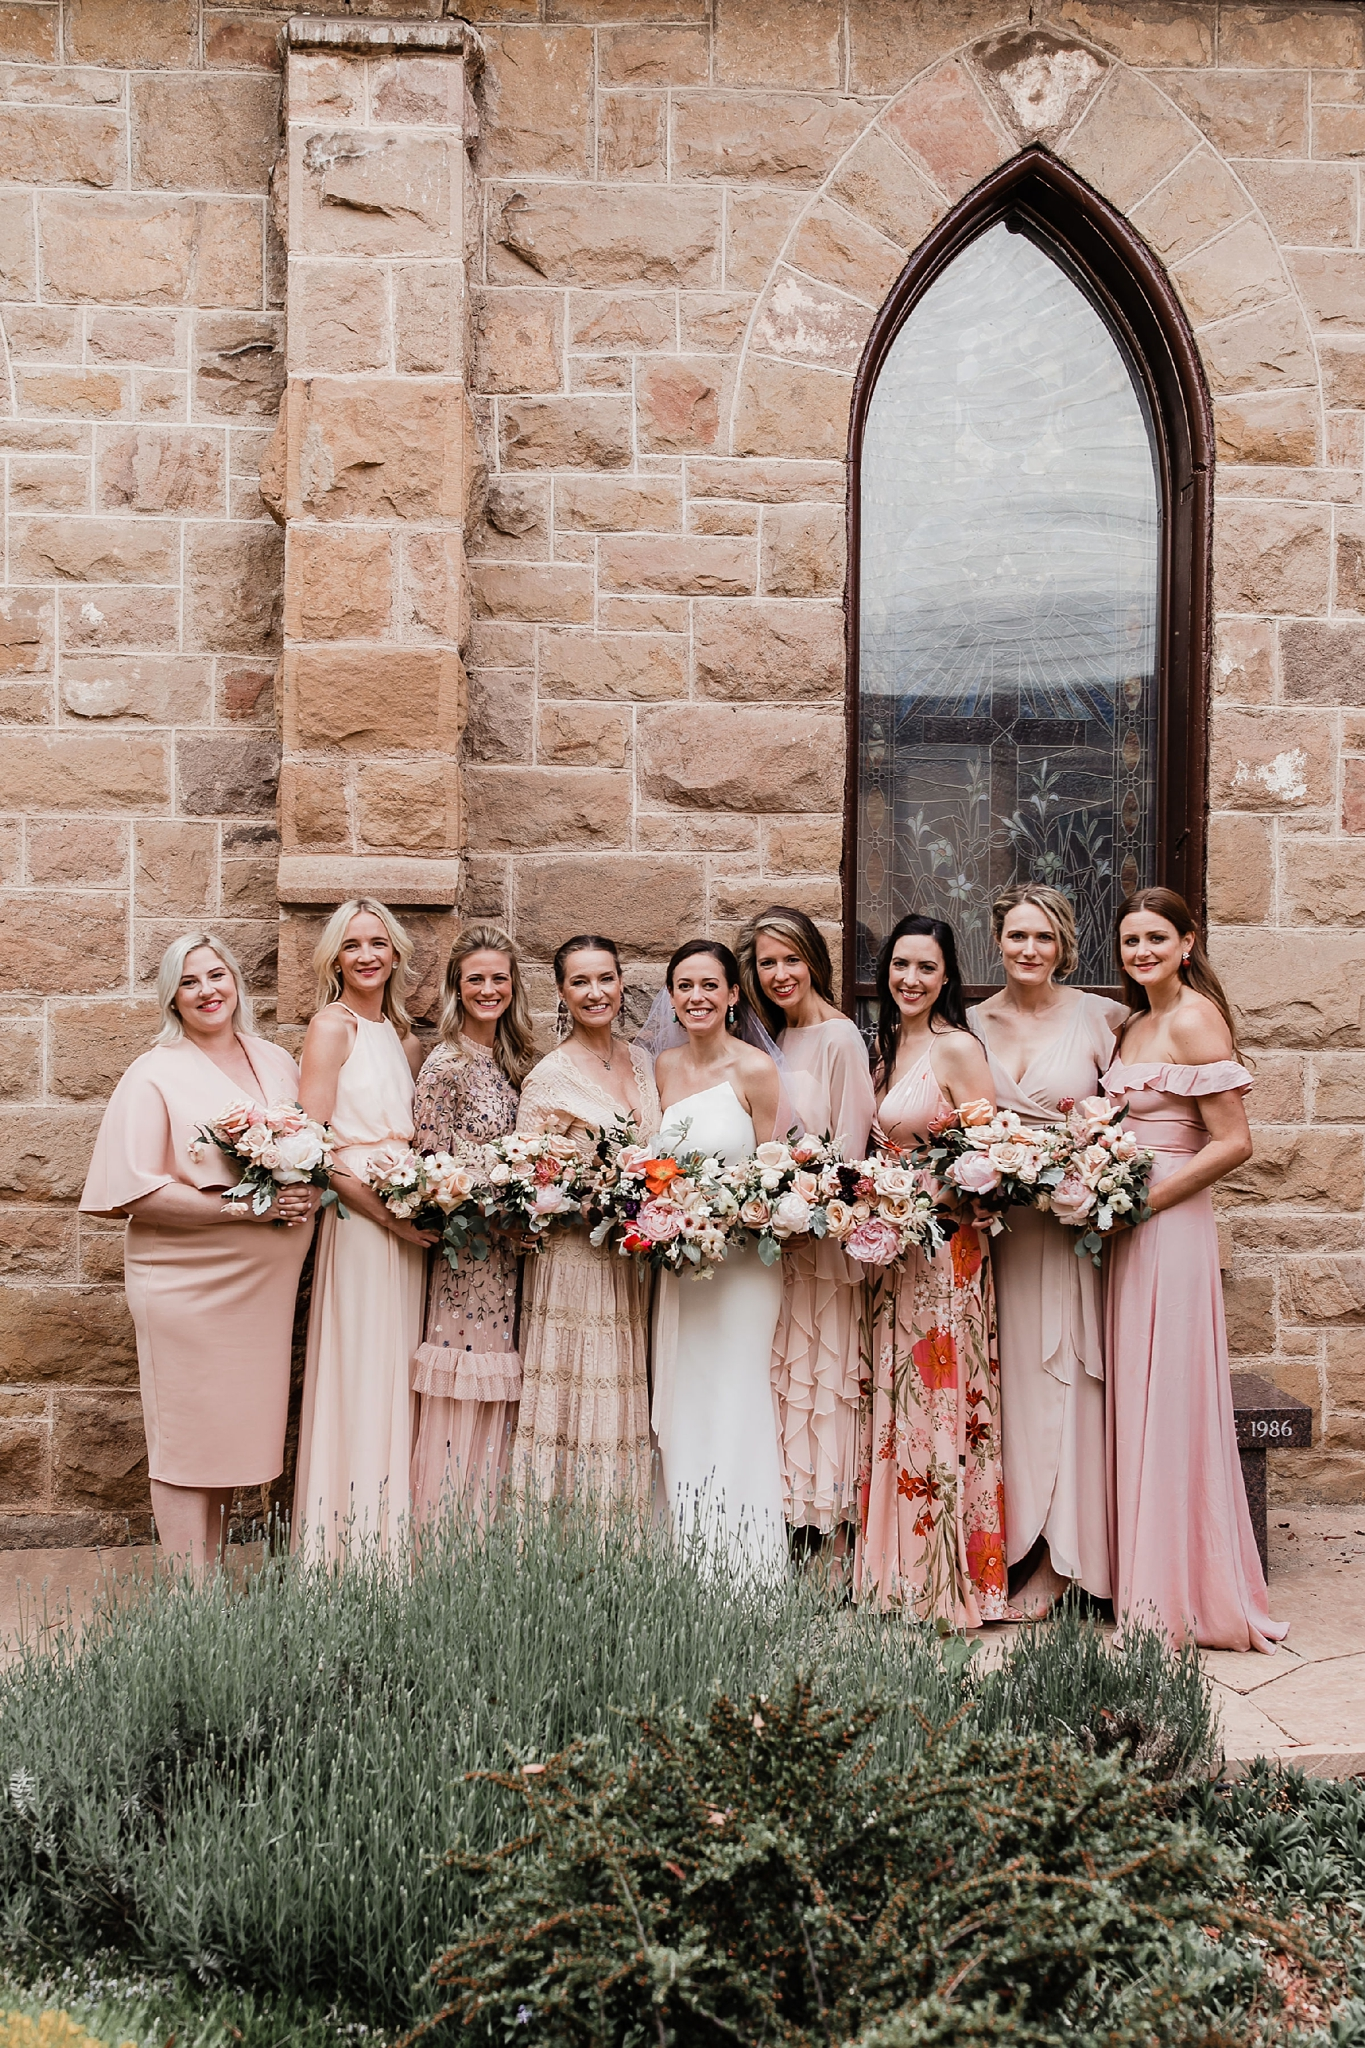 Alicia+lucia+photography+-+albuquerque+wedding+photographer+-+santa+fe+wedding+photography+-+new+mexico+wedding+photographer+-+new+mexico+wedding+-+new+mexico+wedding+-+colorado+wedding+-+bridesmaids+-+bridesmaid+style_0025.jpg